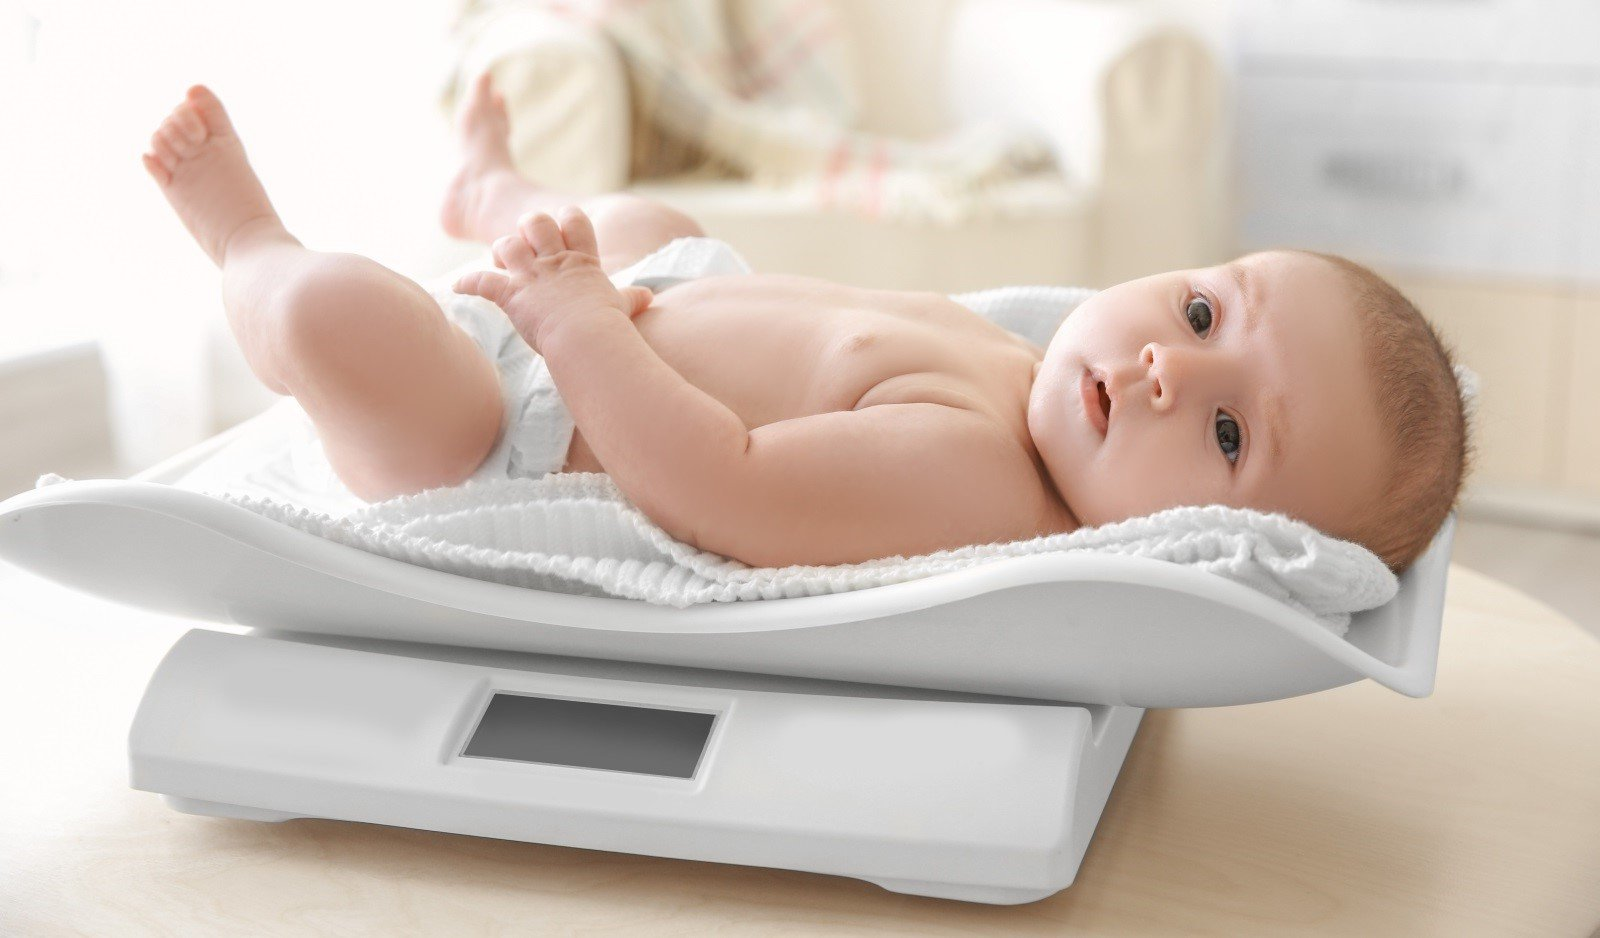 Baby Weigh-In Clinics